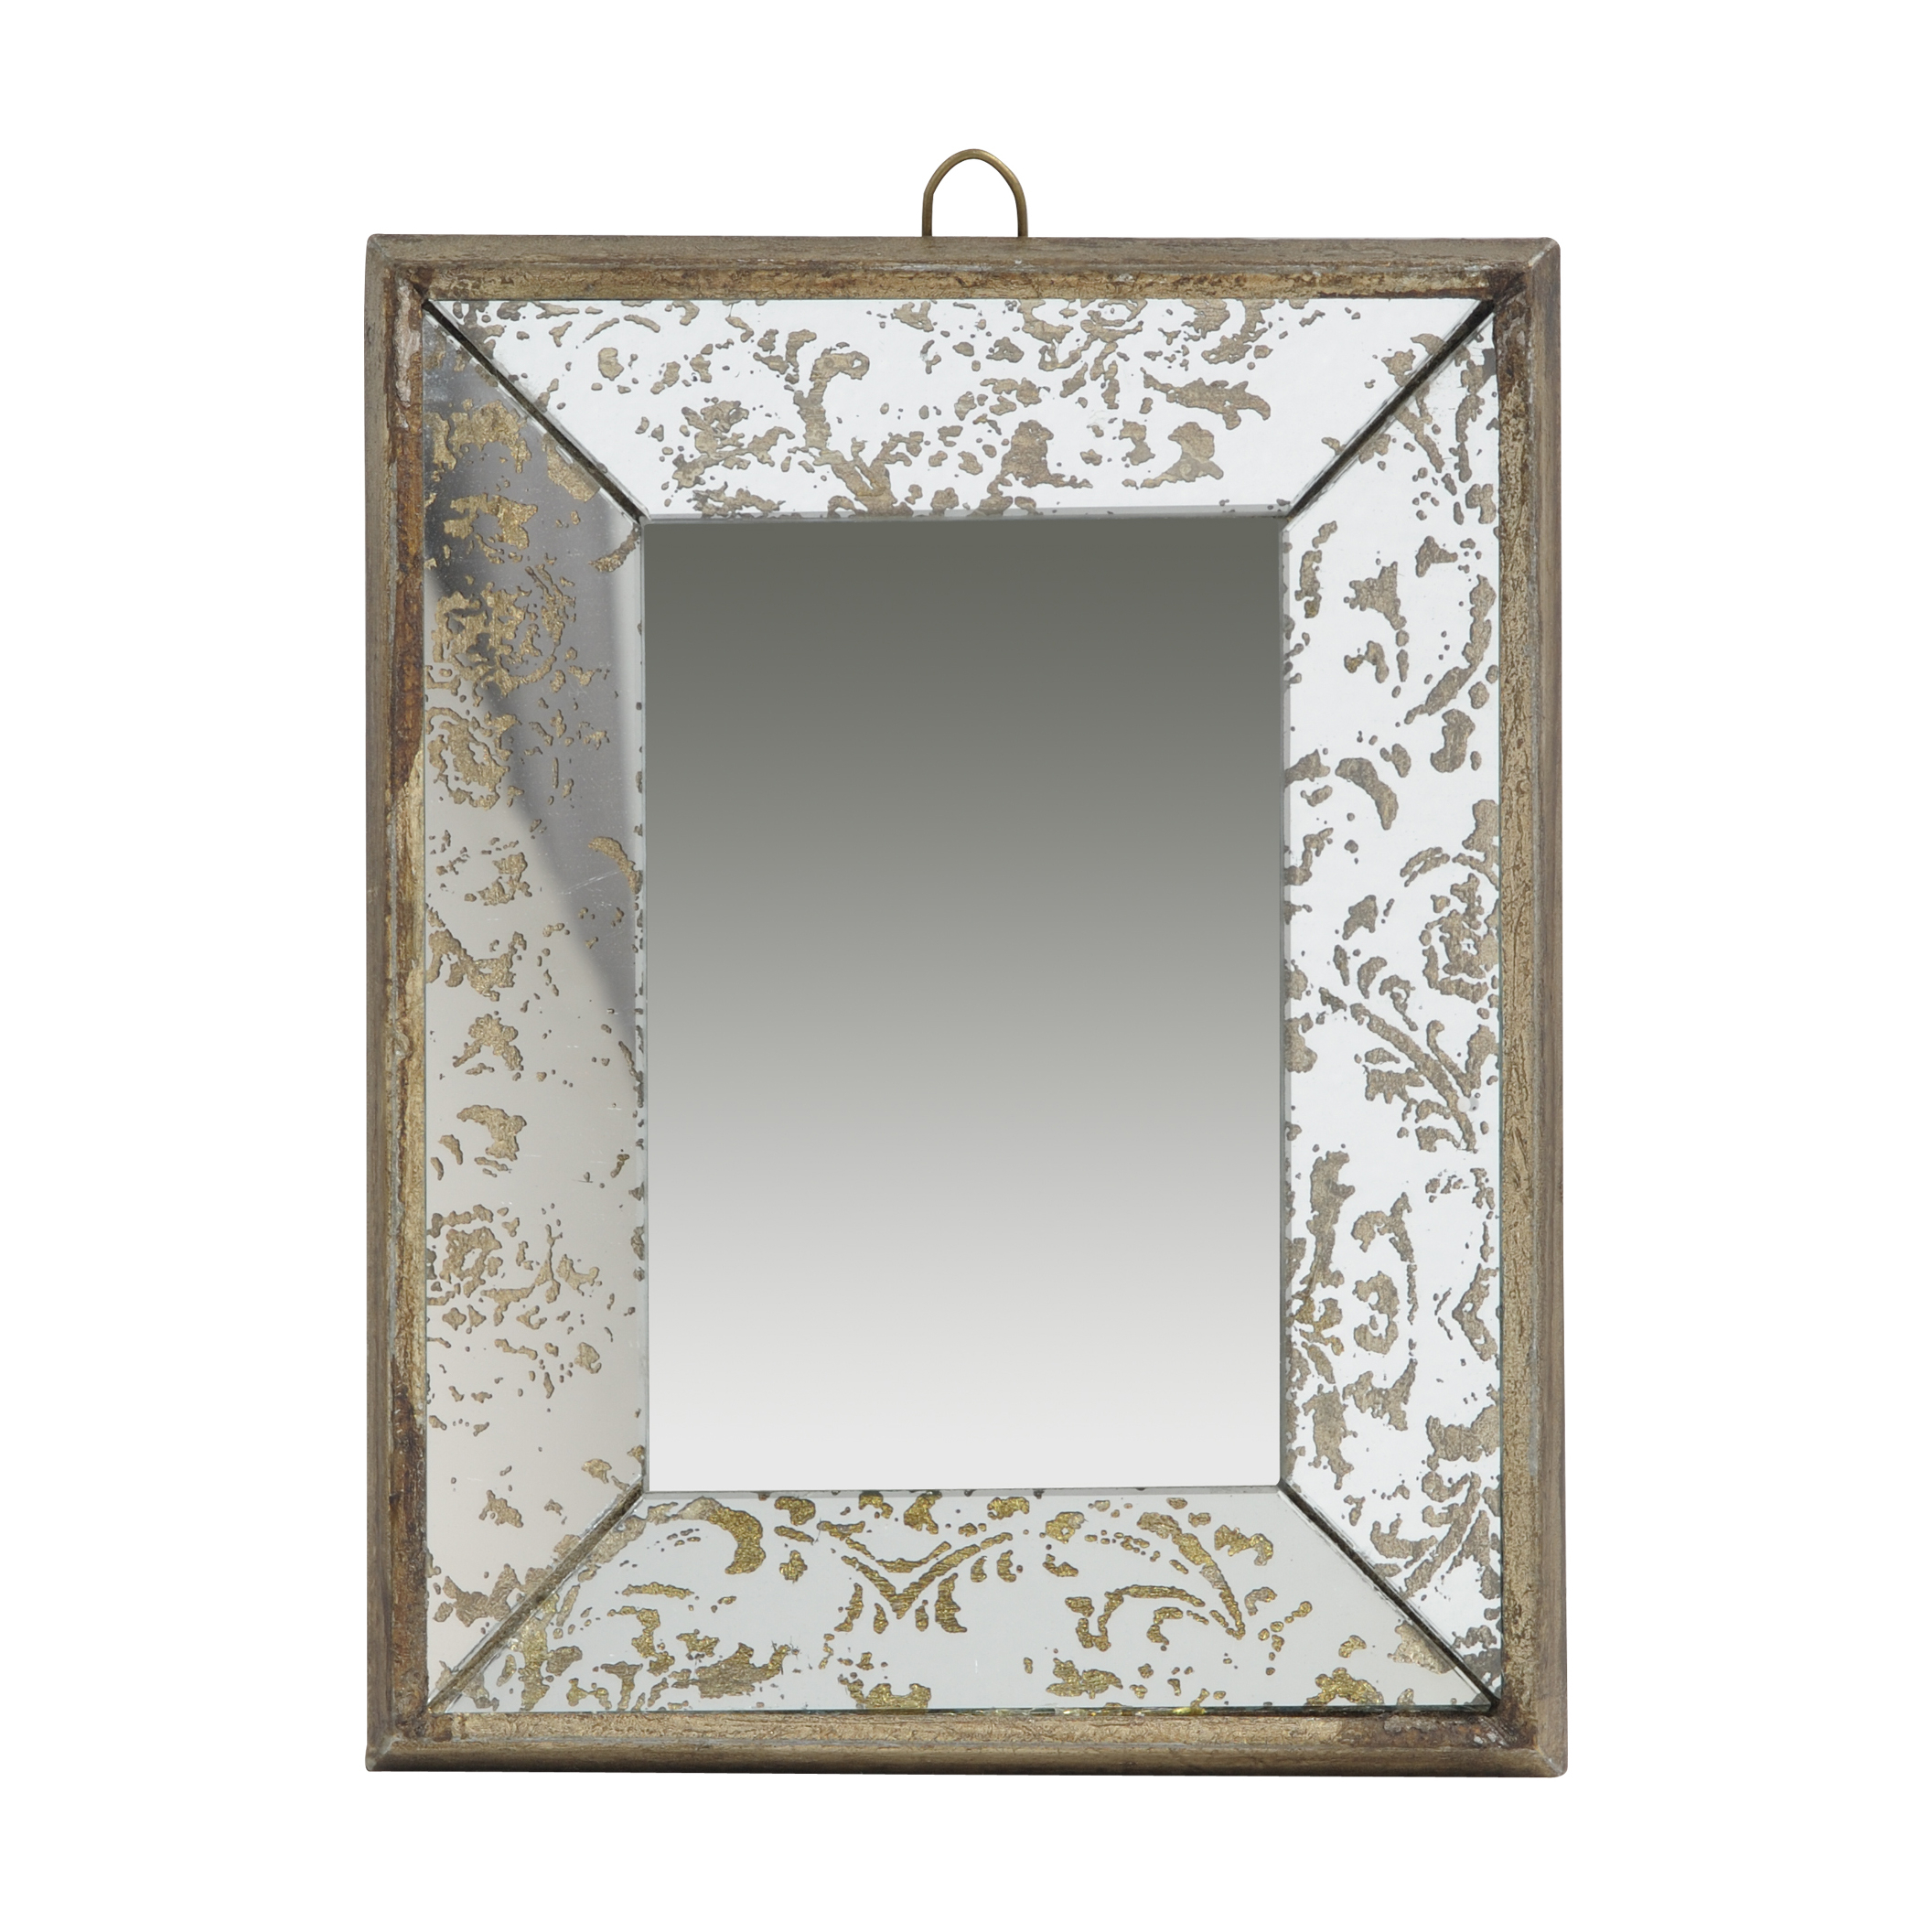 "Antique Style Frameless Wall Mirror Tray 12""x (Image 3 of 20)"